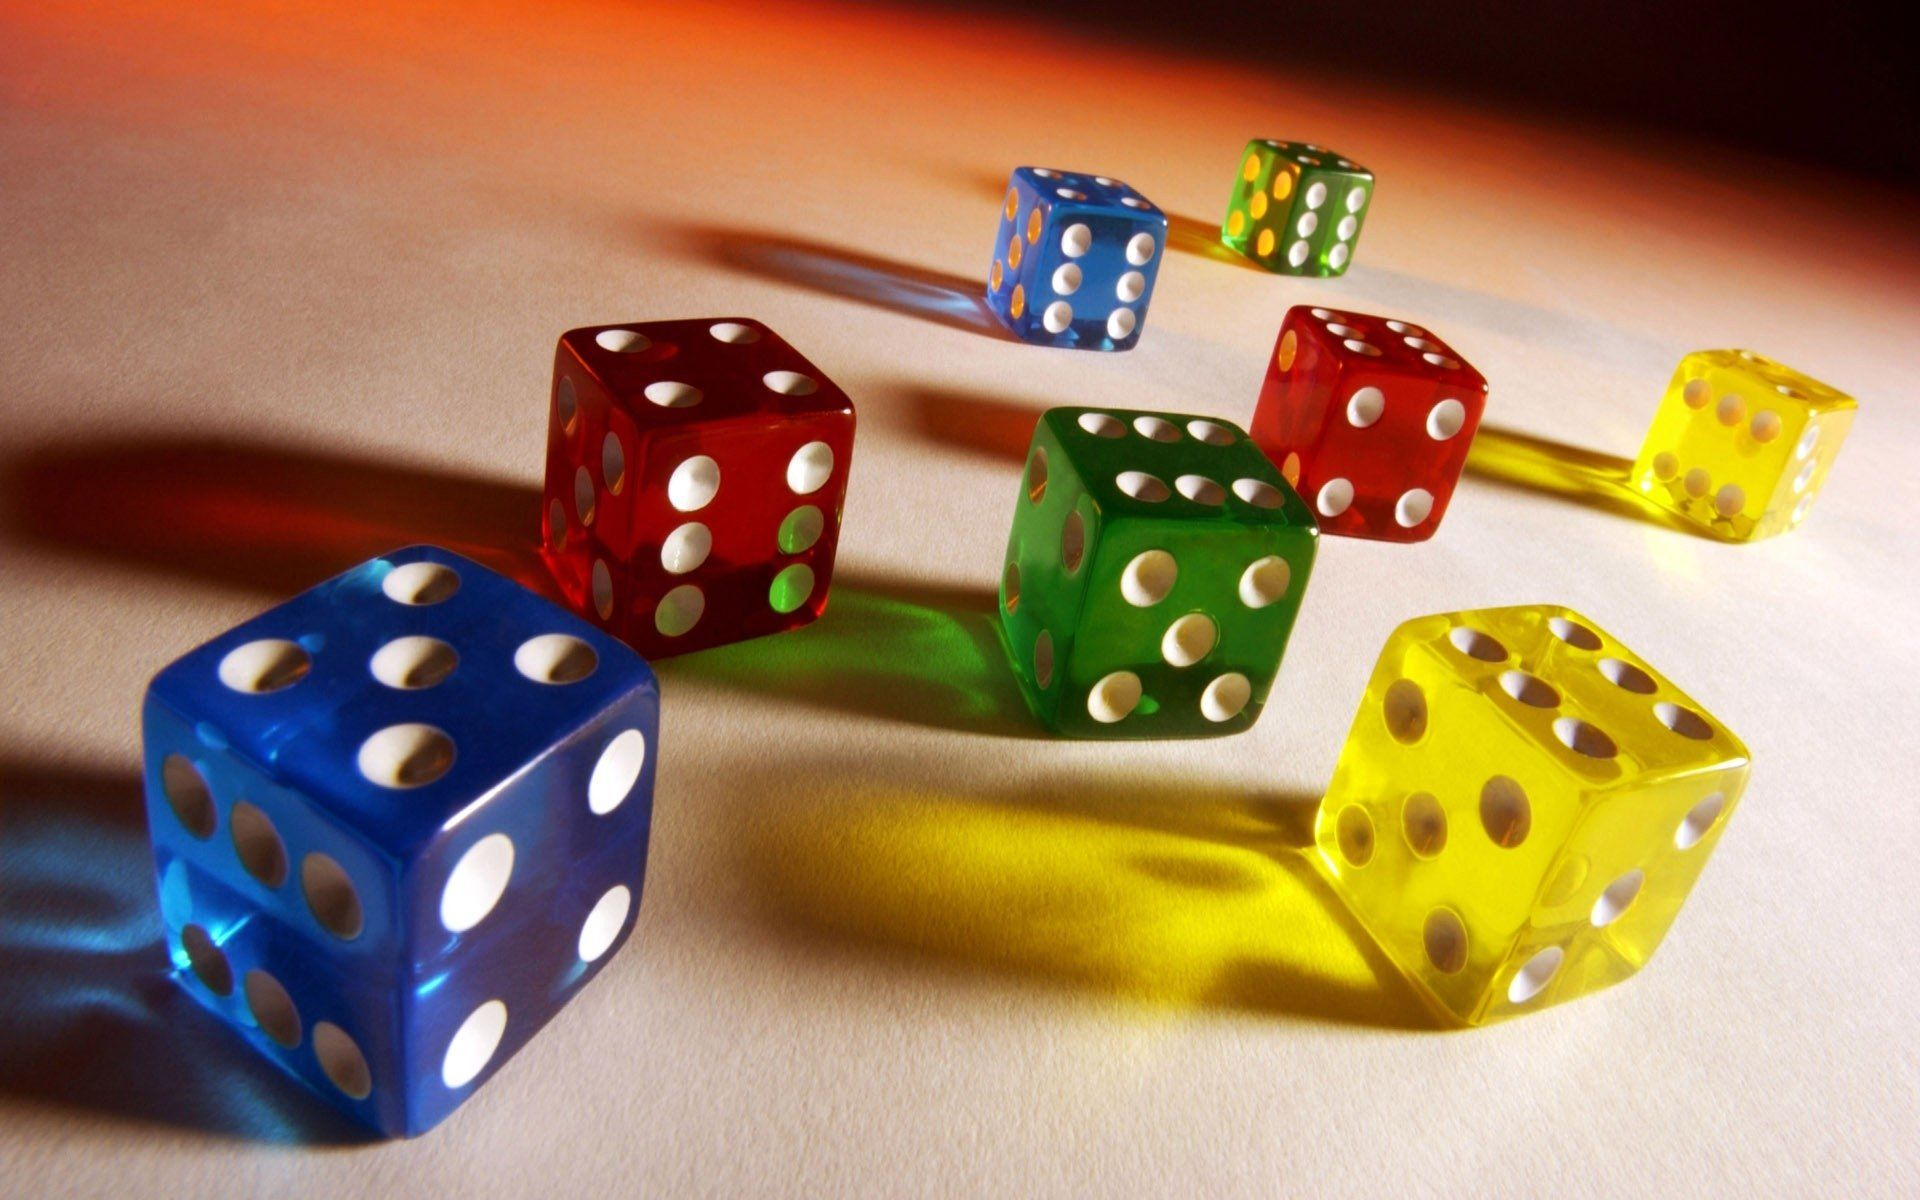 1920x1200 43 Dice HD Wallpapers | Background Images - Wallpaper Abyss